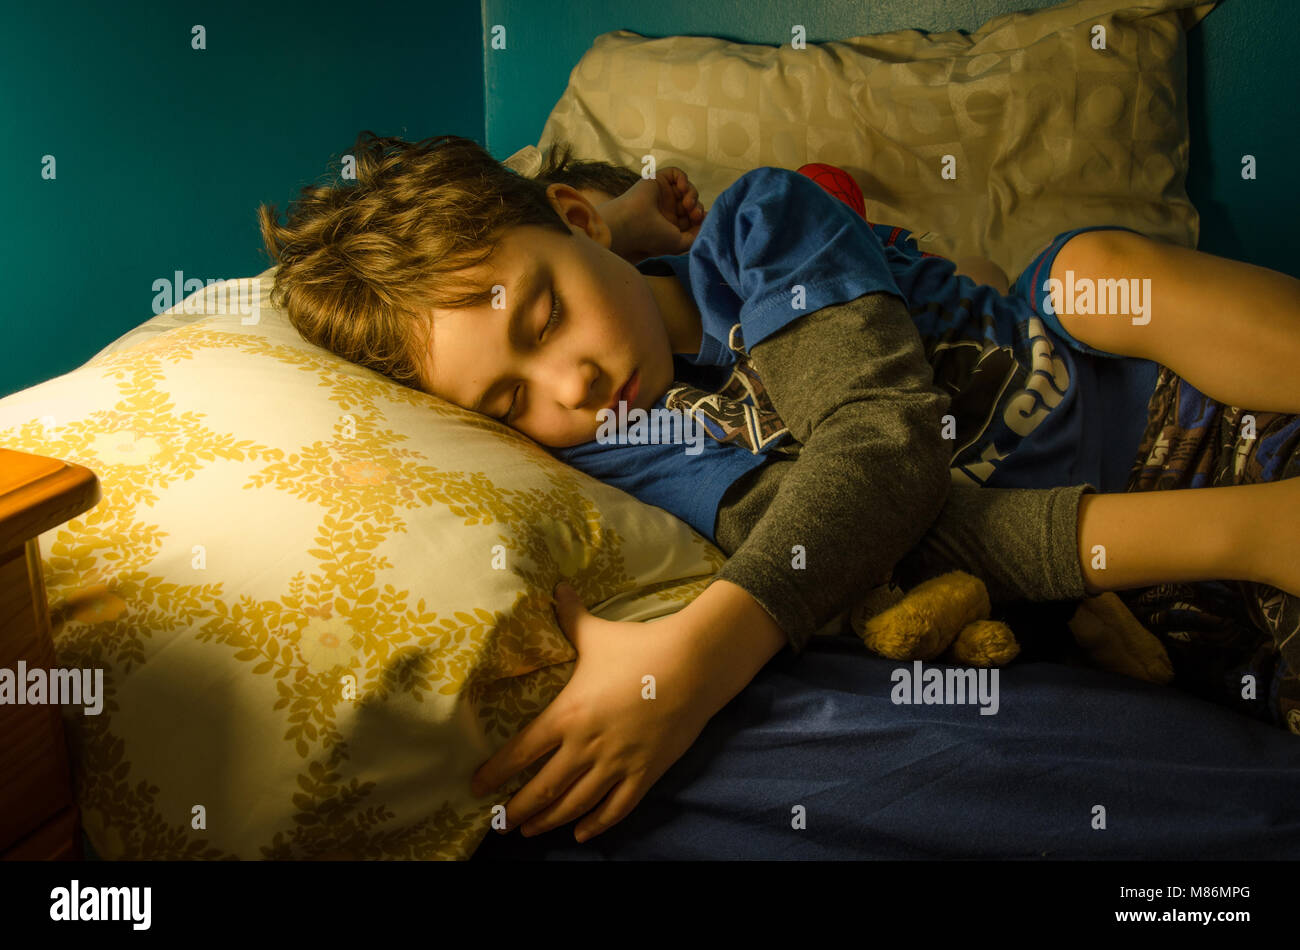 two-young-brothers-asleep-in-the-same-bed-at-nighttime-the-scene-is-M86MPG.jpg